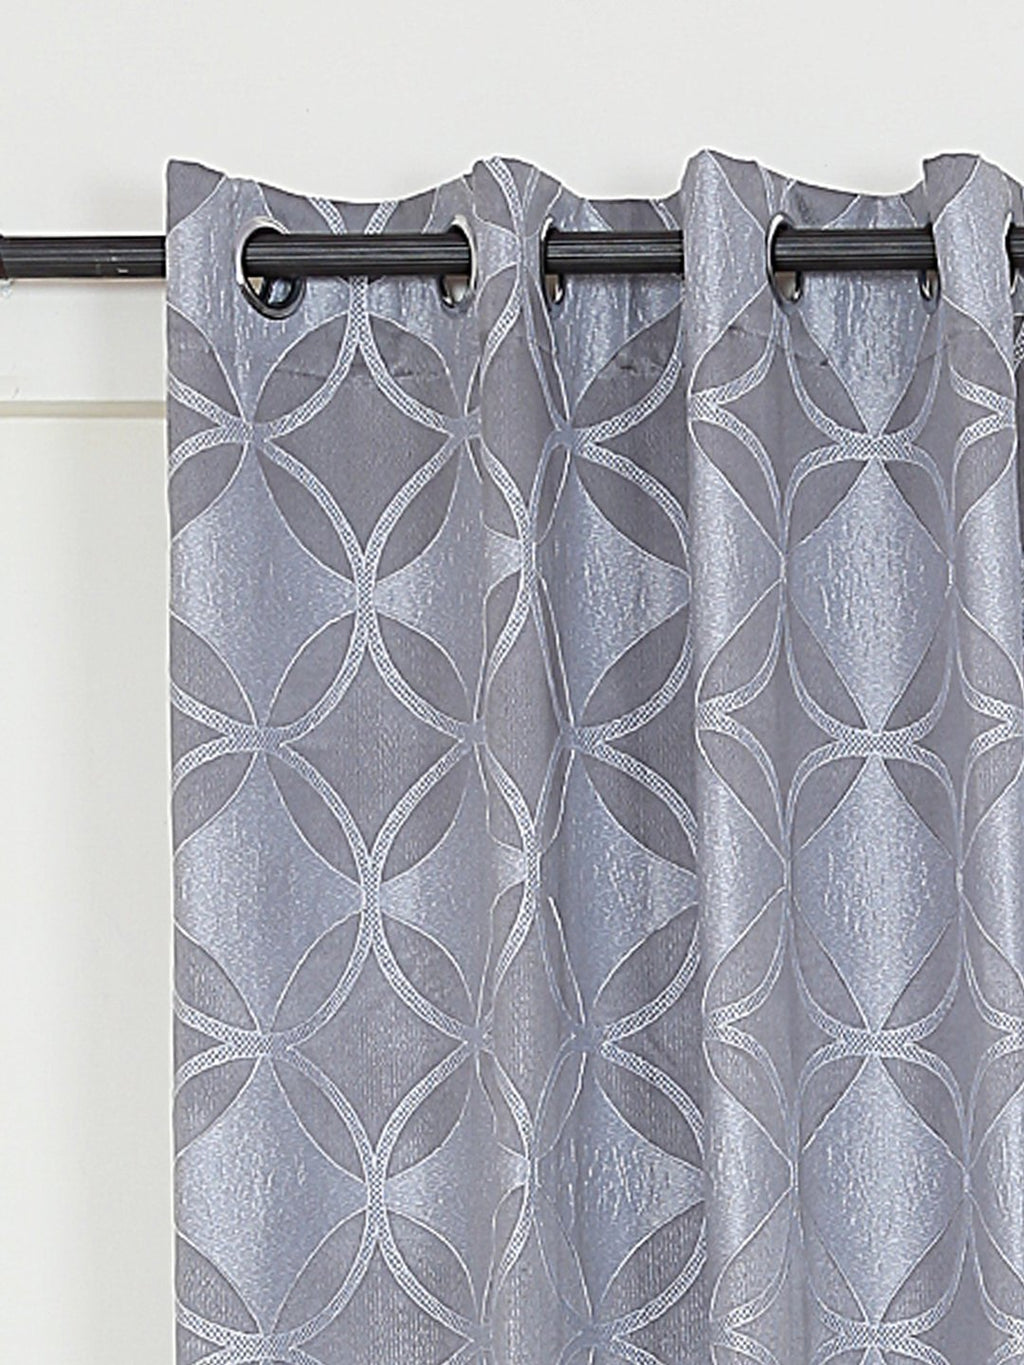 RANGRAGE 1 Piece Eyelet Polyester Window Curtain, 7ft, Grey & White